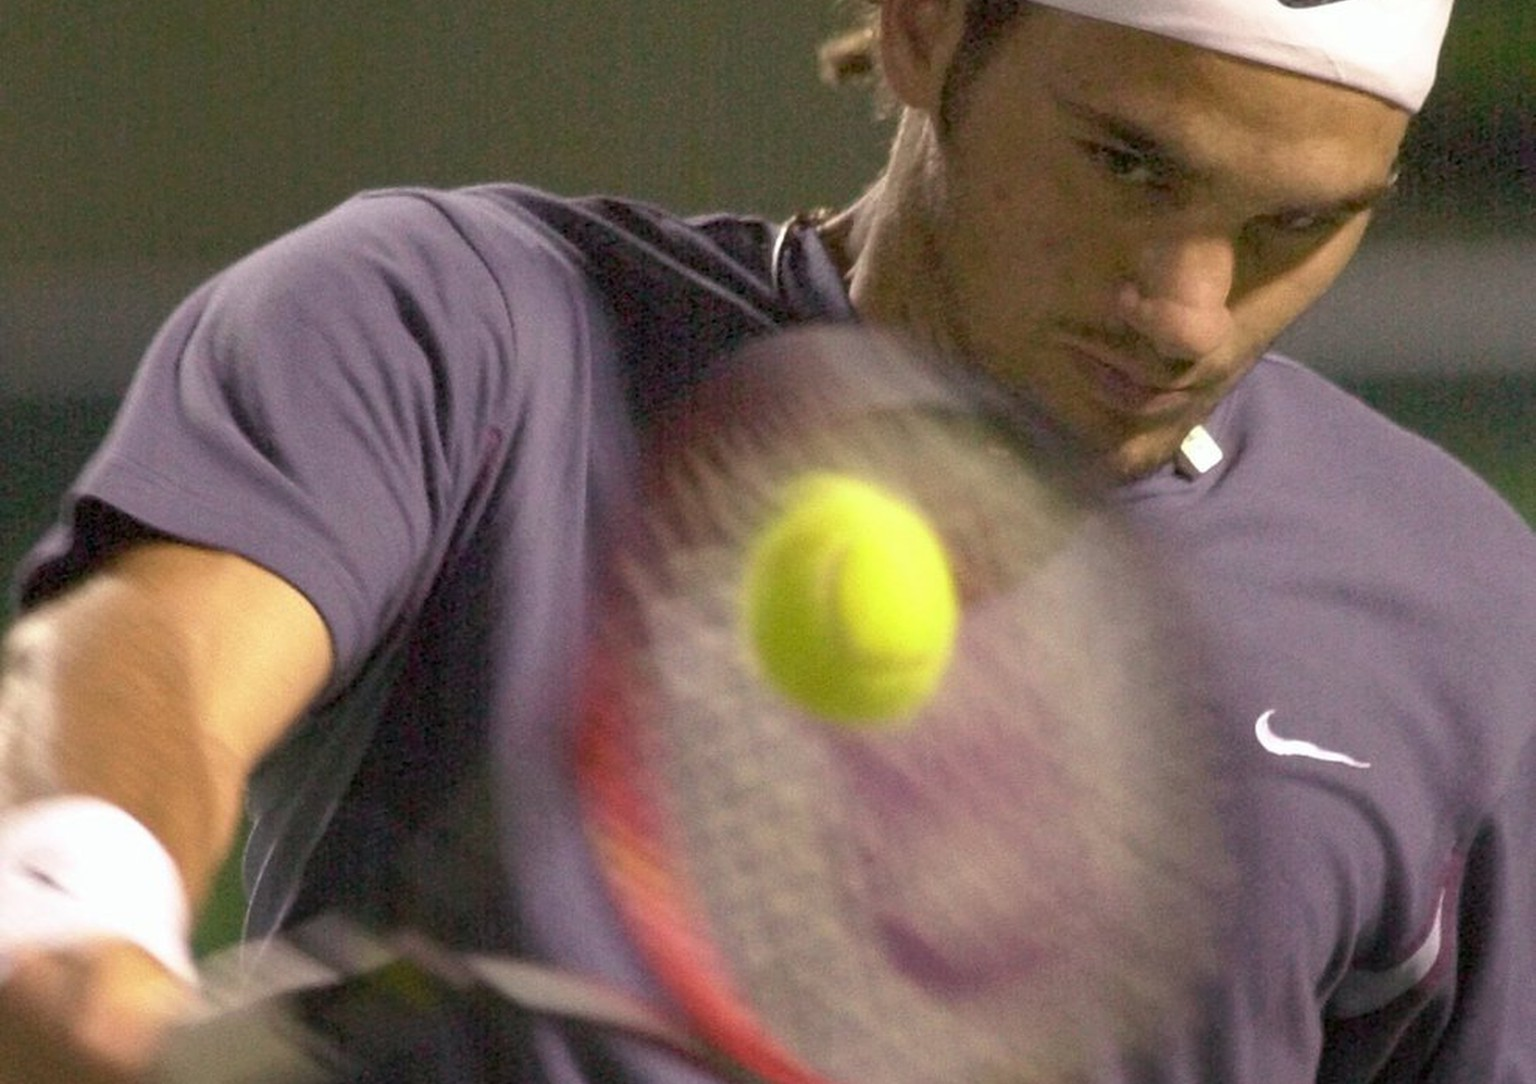 Roger Federer of Switzerland returns a shot from Lleyton Hewitt of Australia during the Nasdaq-100 Open on Friday, March 29, 2002, in Key Biscayne, Fla. (AP Photo/Wilfredo Lee)